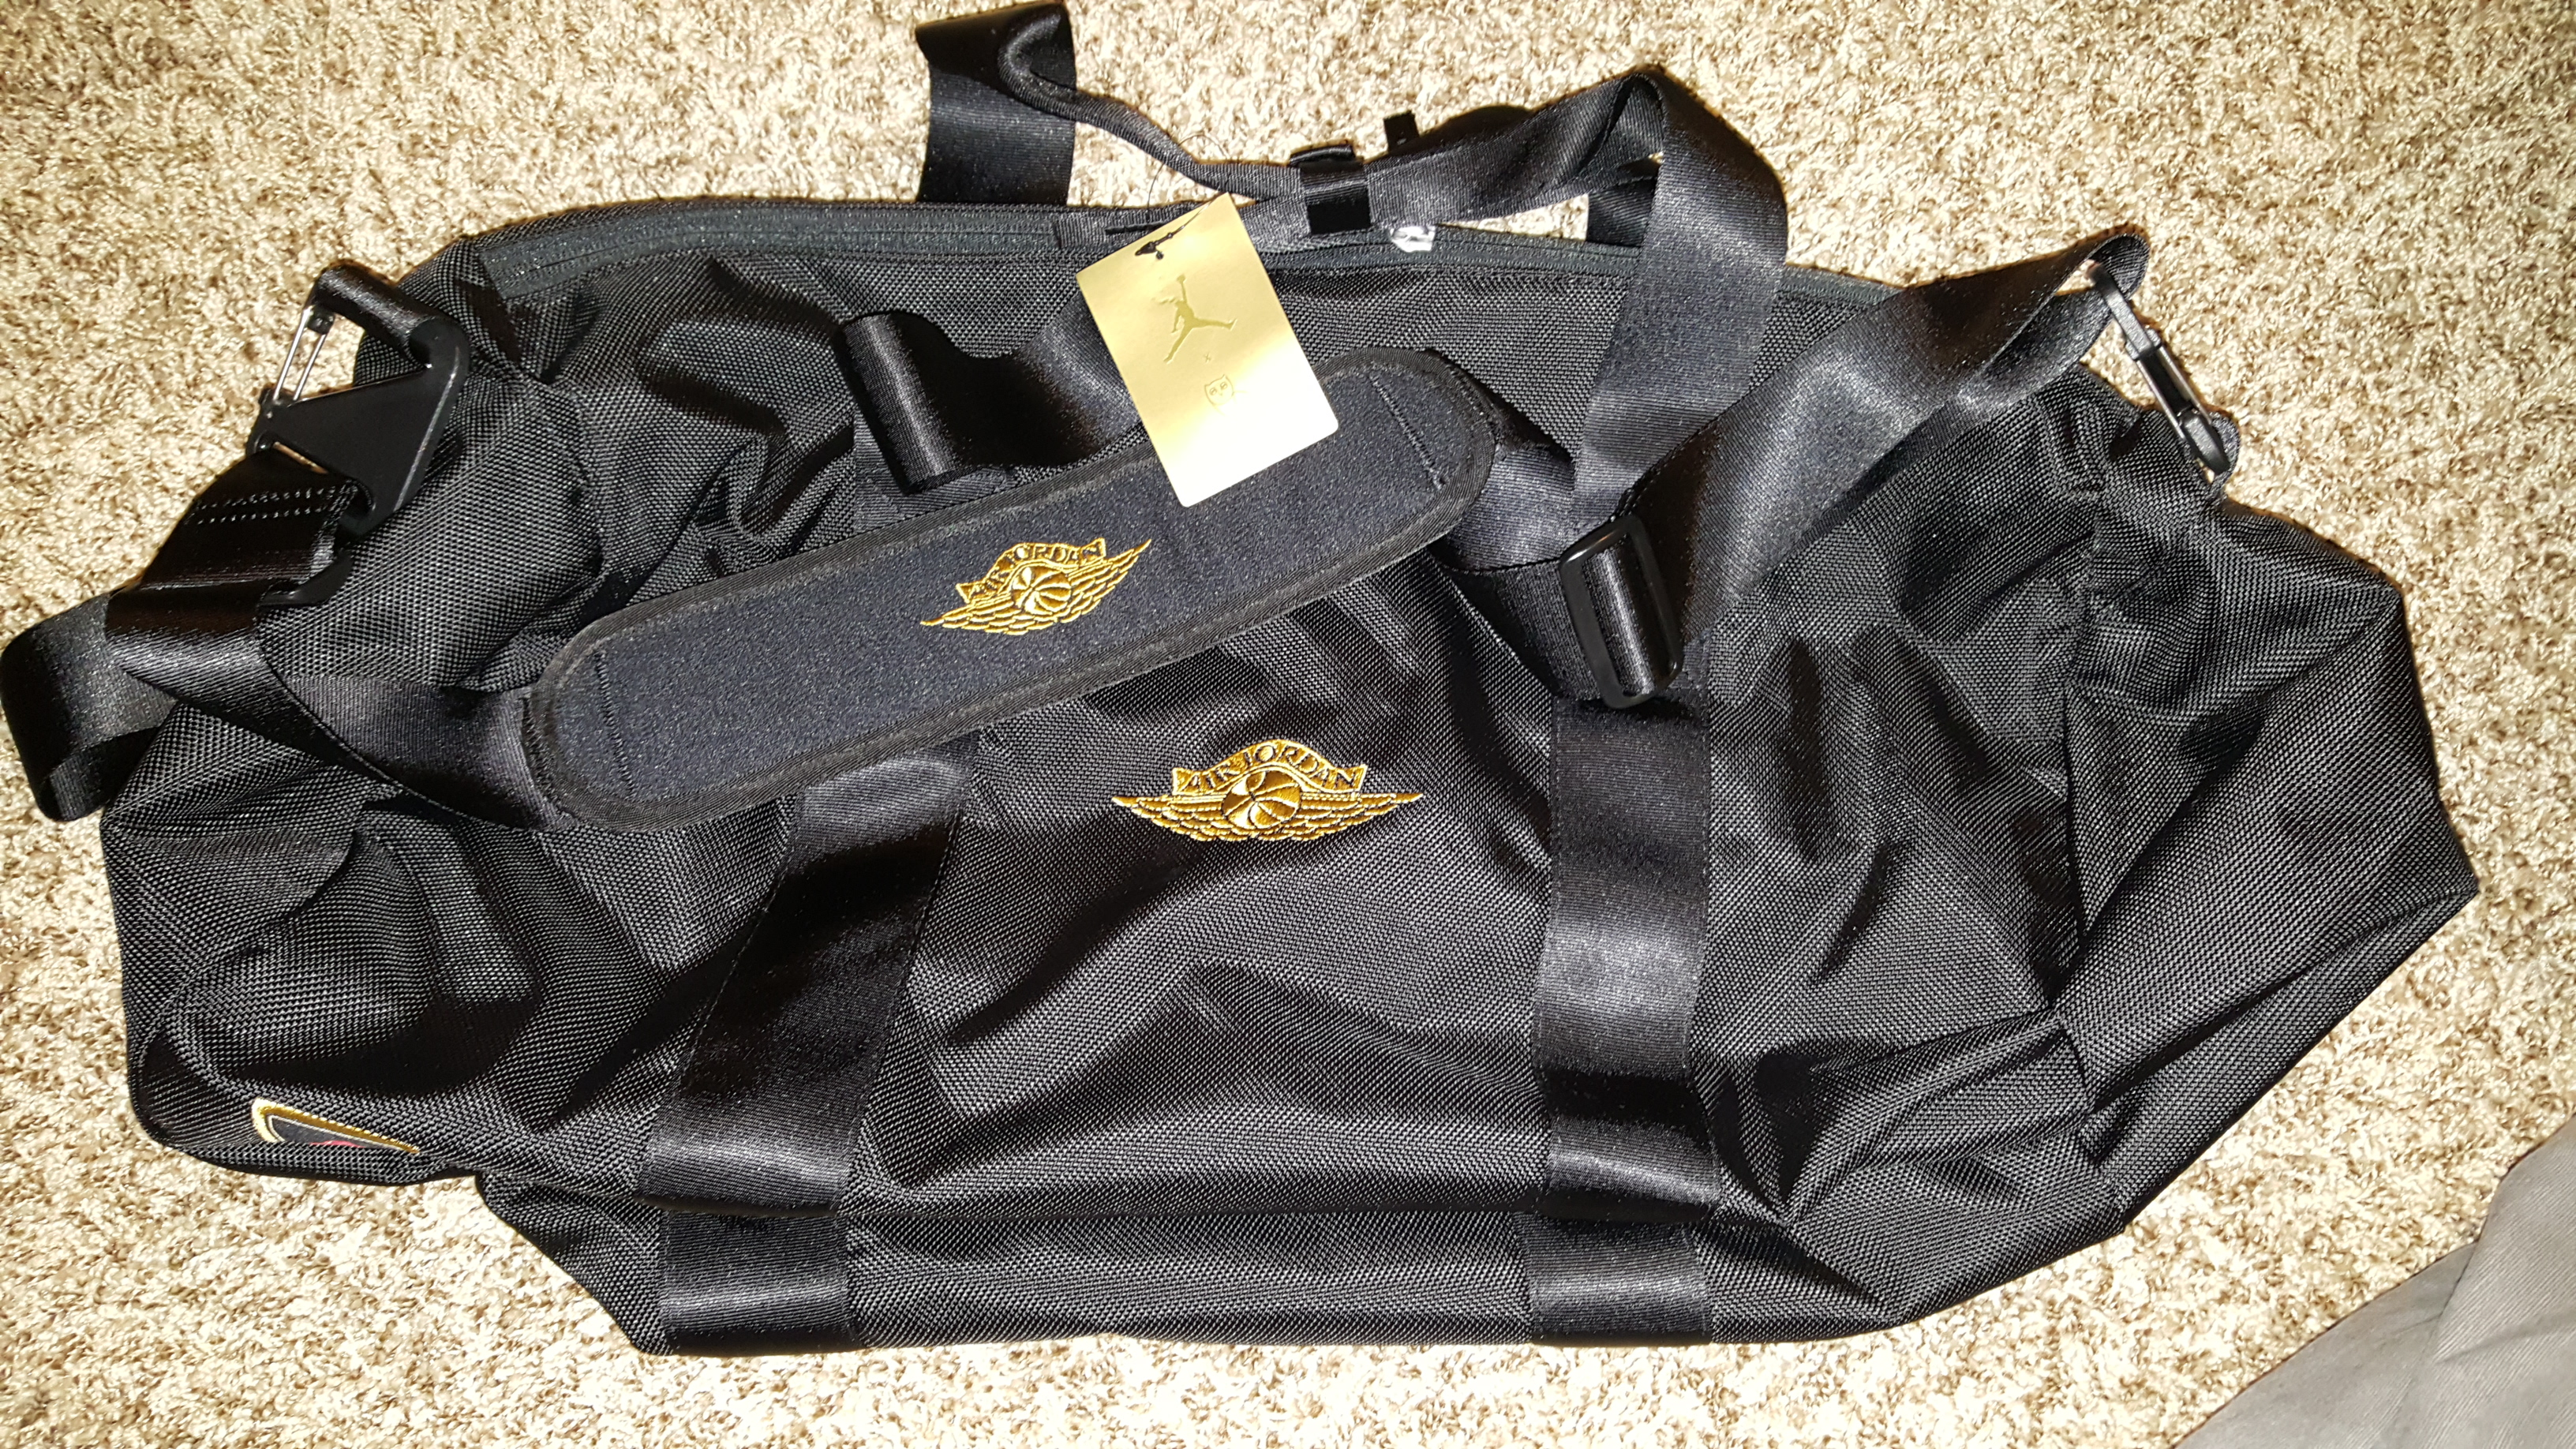 5db00155ee51 Jordan Brand Jordan Brand x OVO Duffle Bag Size one size - Bags   Luggage  for Sale - Grailed